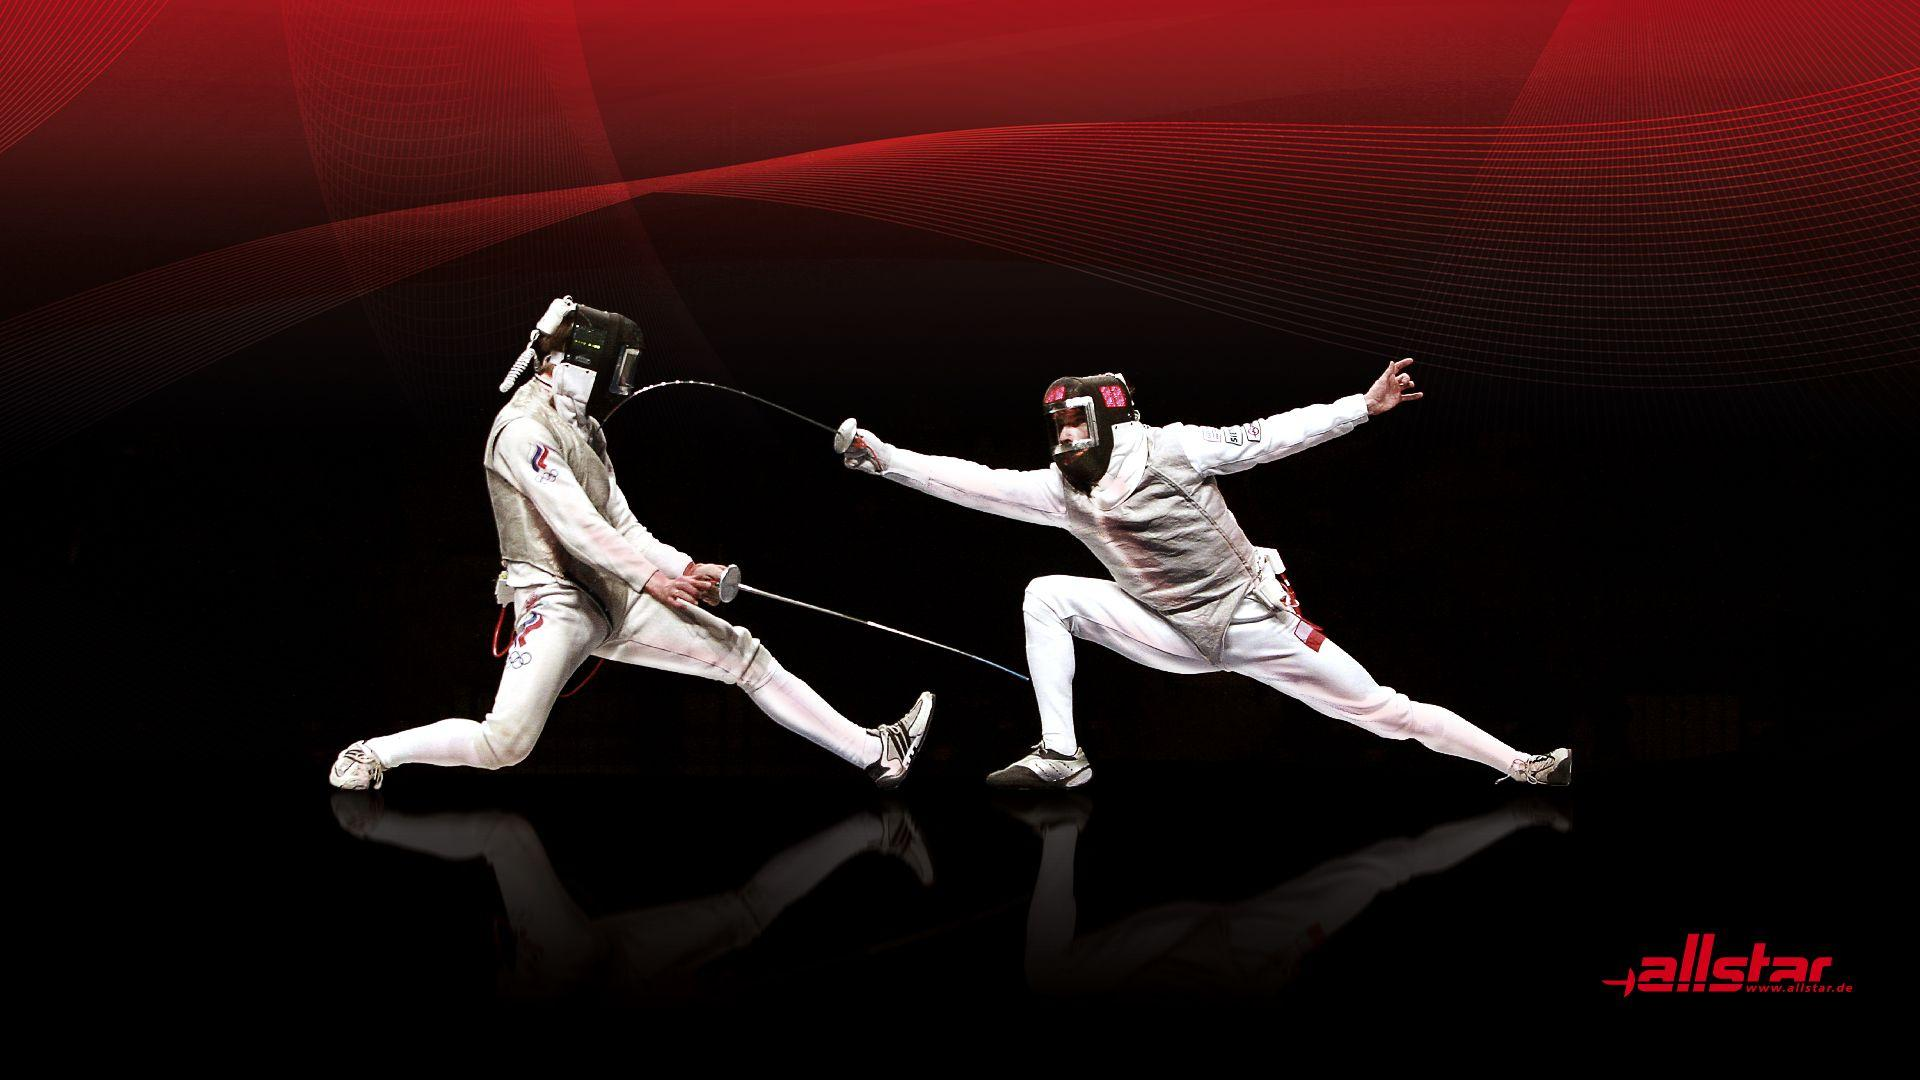 Fencing Best Wallpaper 27777 - Baltana